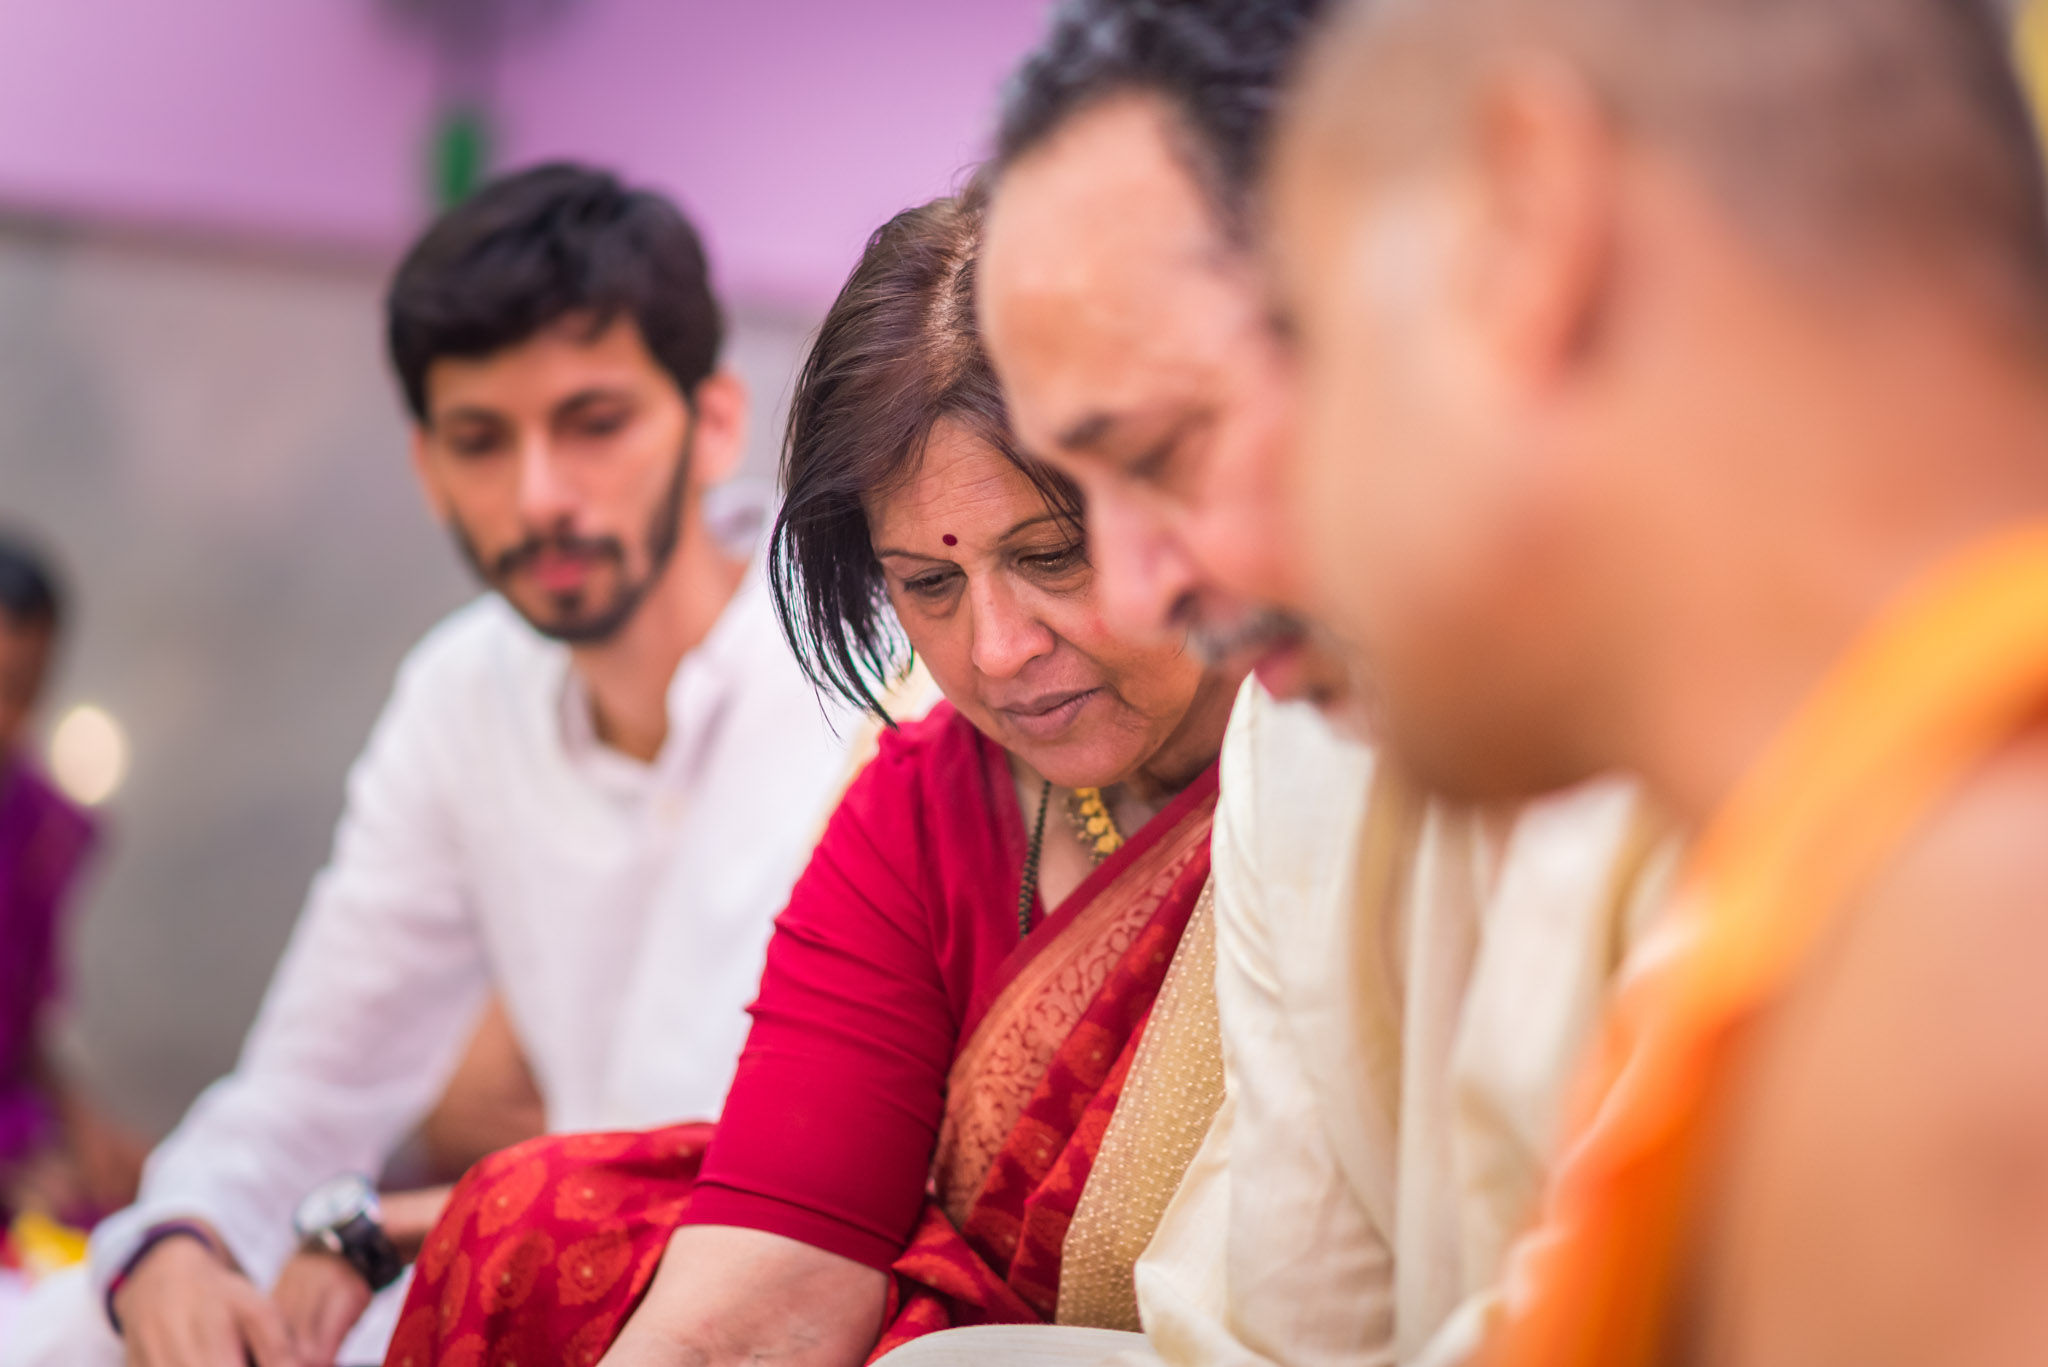 WhatKnot-Candid-Wedding-Photography-Mumbai-Bangalore-82